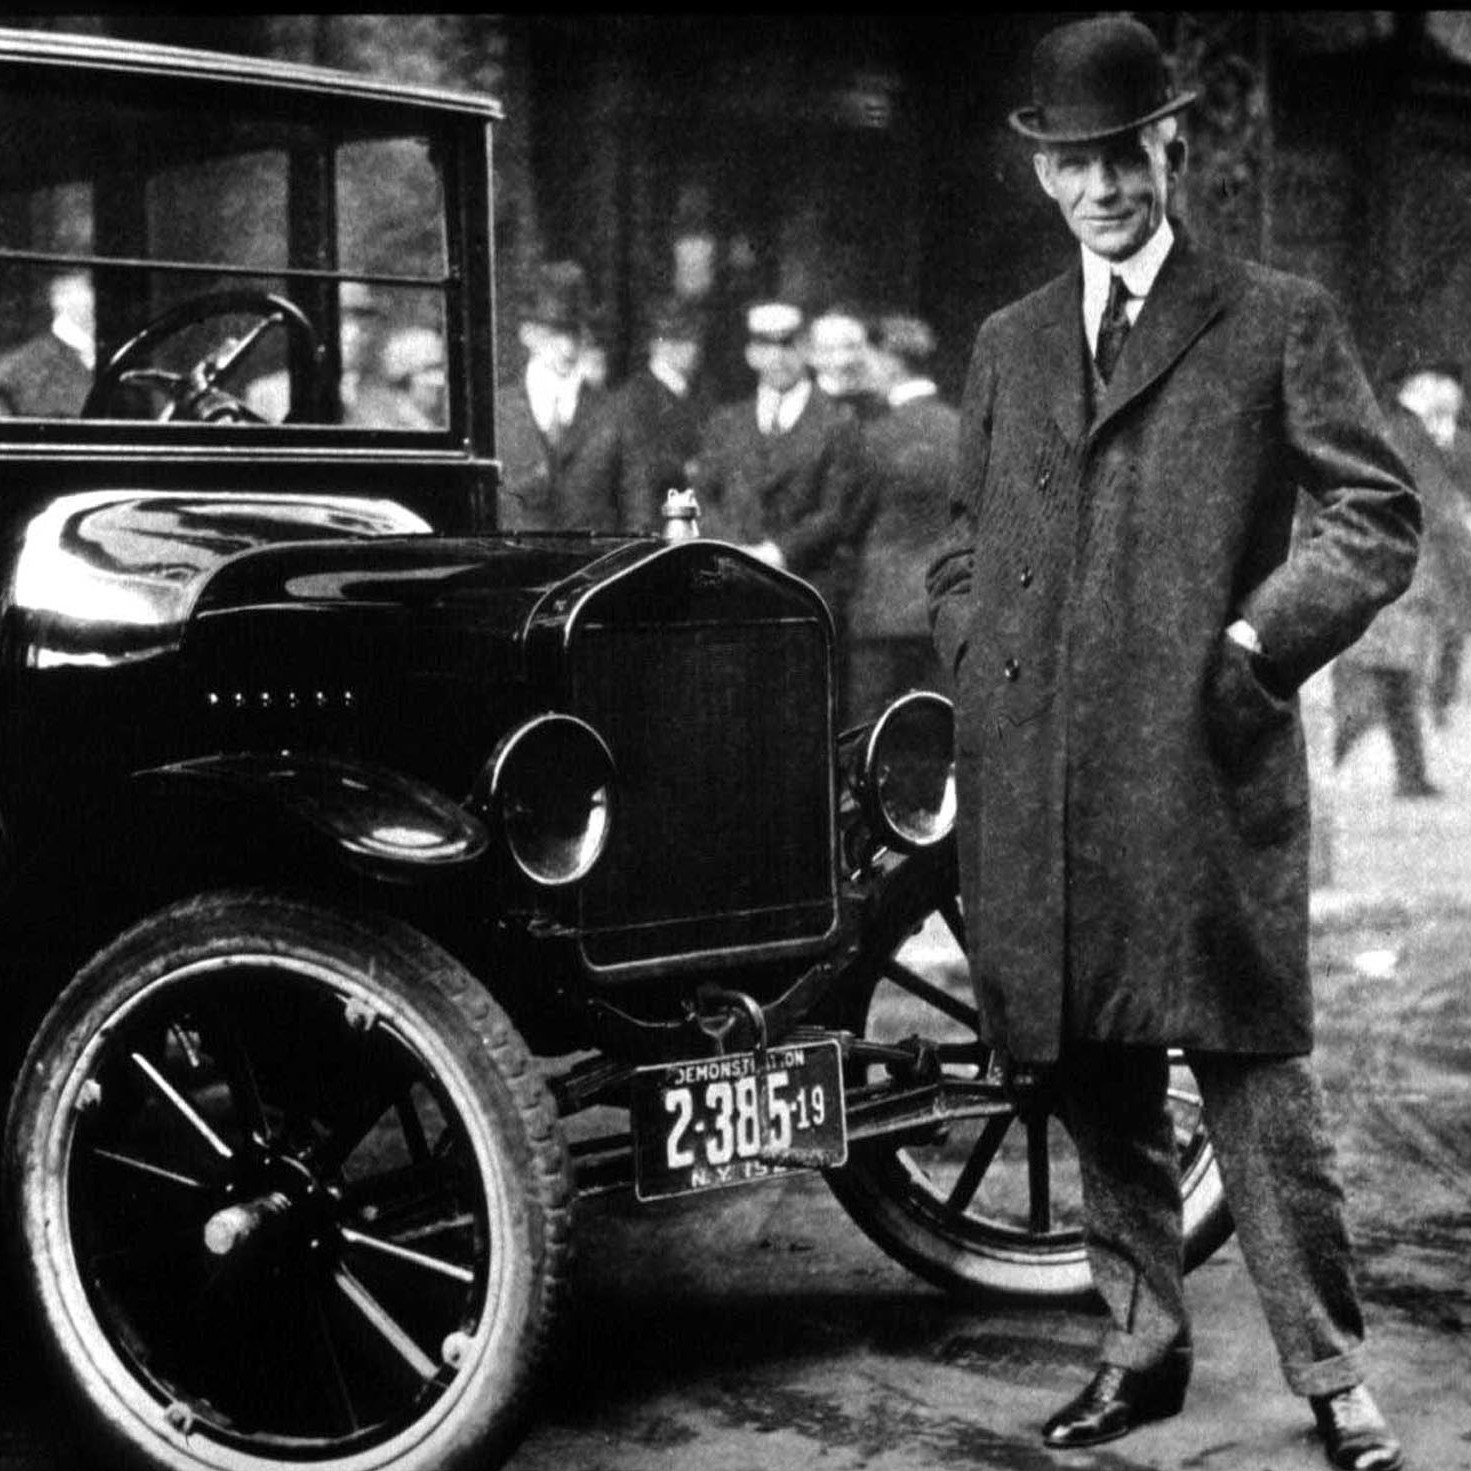 Henry Ford may have paid his workers a good wage, but it wasn't out of charity -- it was a good business decision that some say helped the middle class take off.